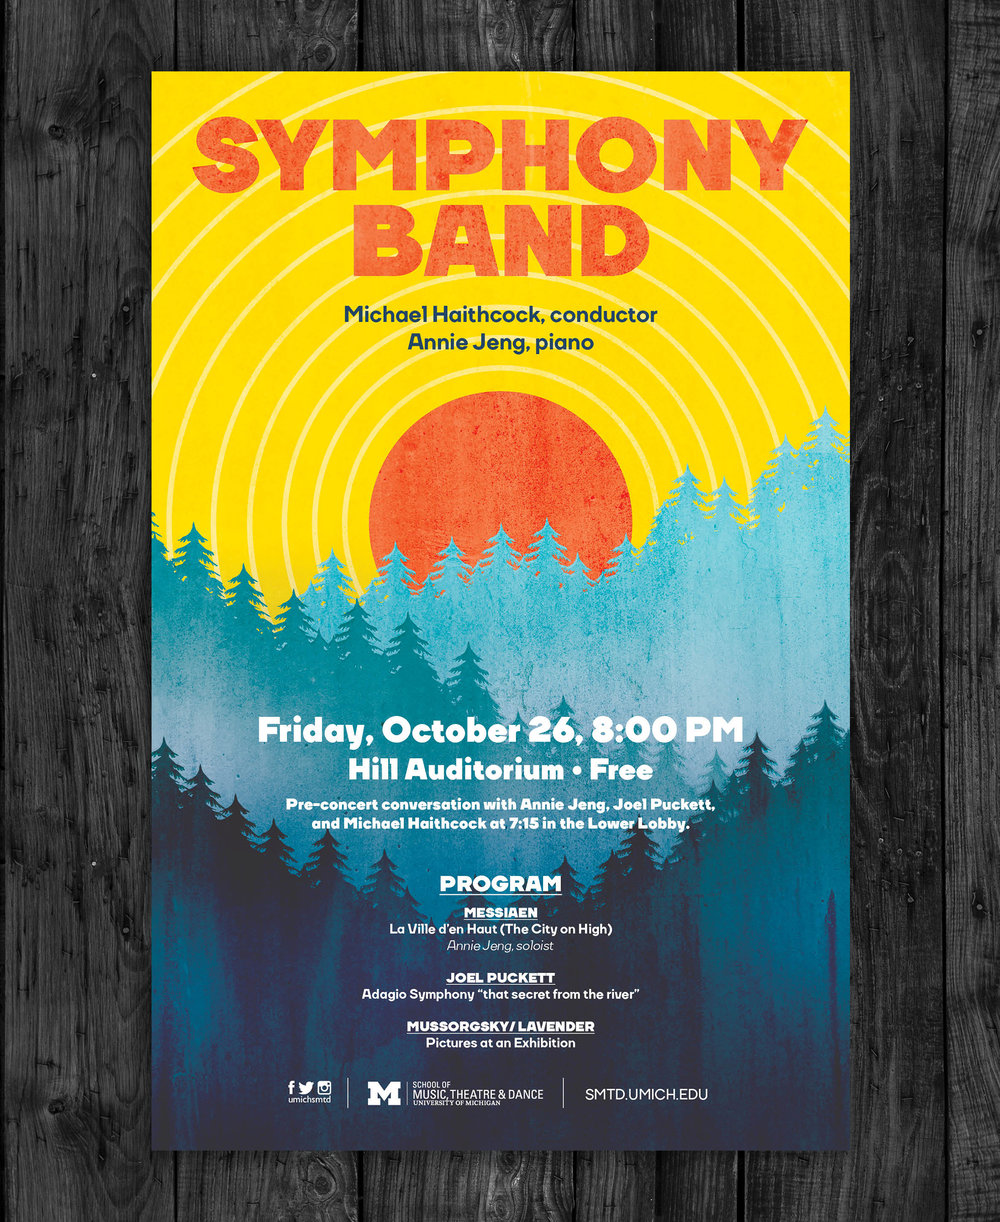 Client:  University of Michigan School of Music, Theater and Dance   Objective:  Develop a sunrise-themed poster for the University of Michigan's SMTD Symphony Band's fall performance.